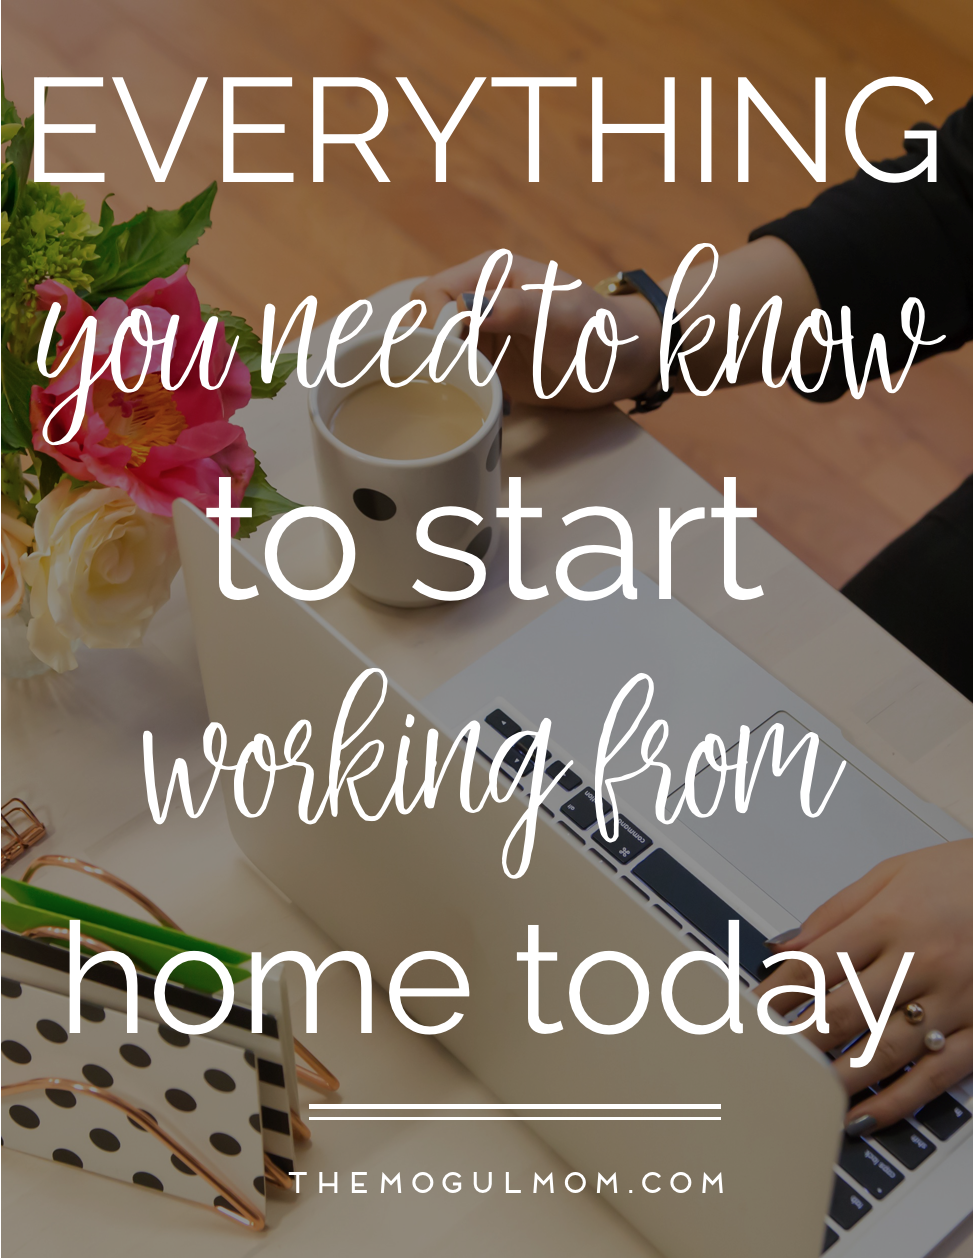 Everything you need to know to start a work-from-home business for under $50